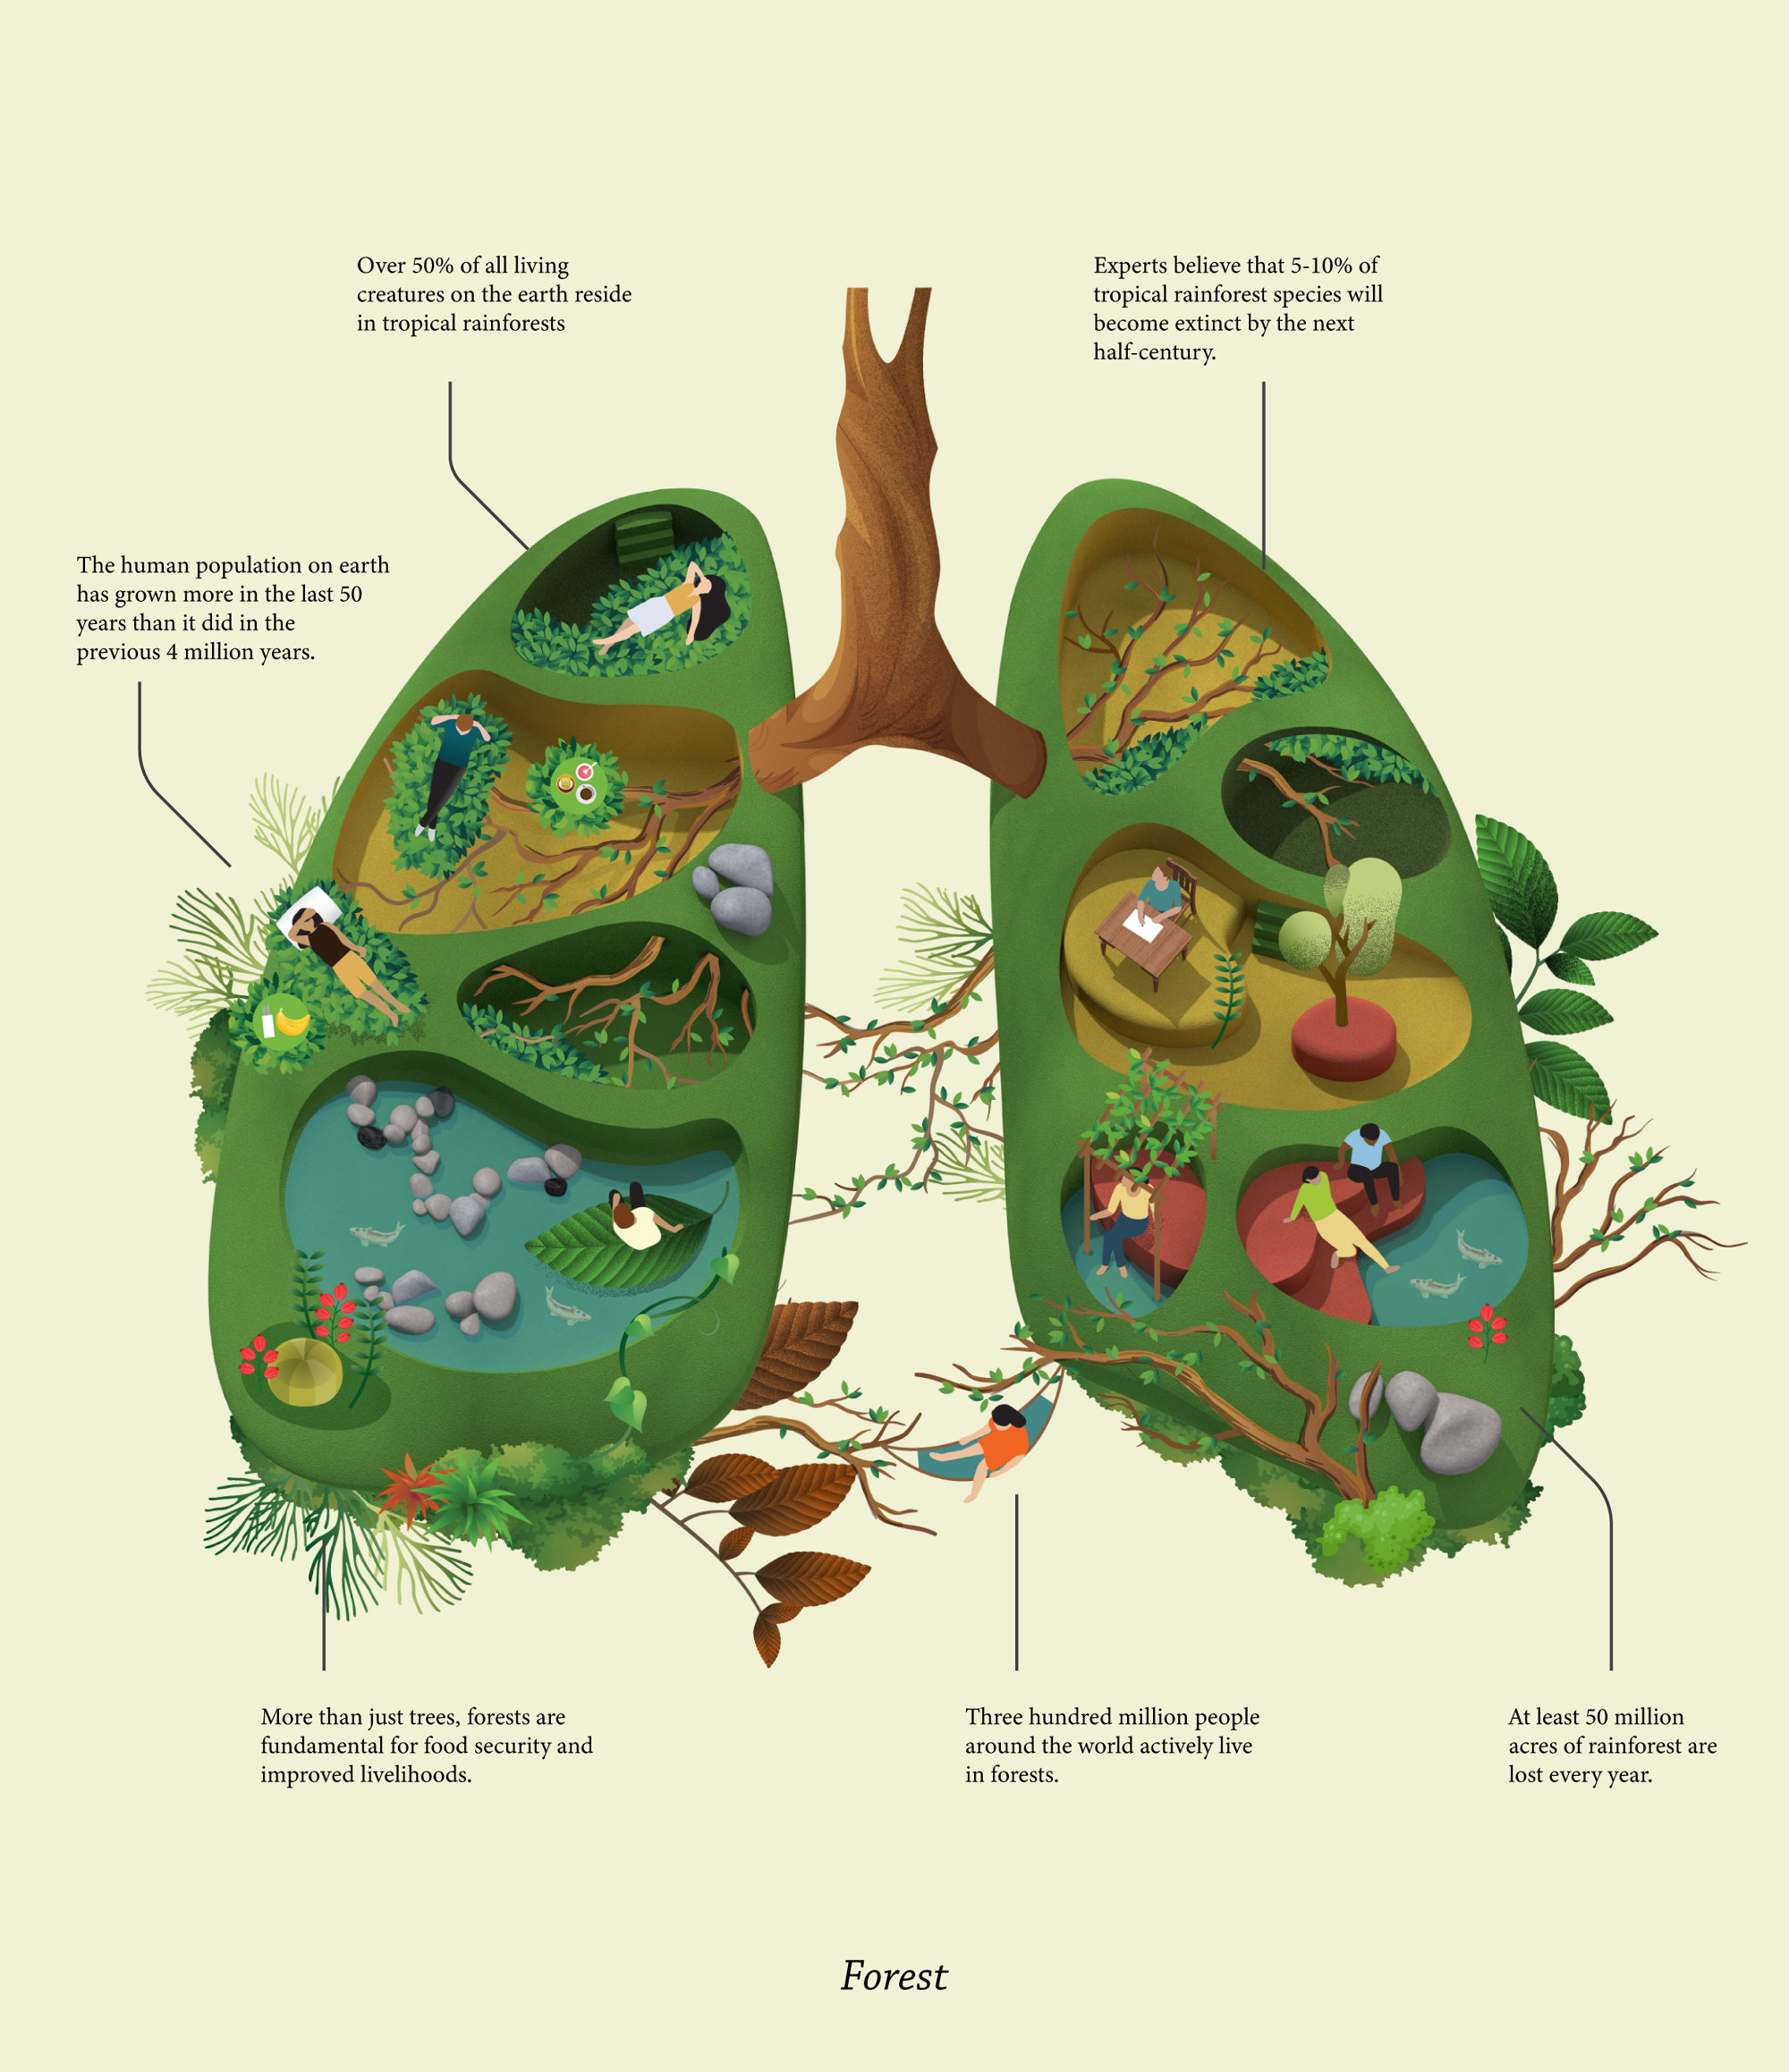 illustrated image of human lungs with trees, greenery, and people in different compartments